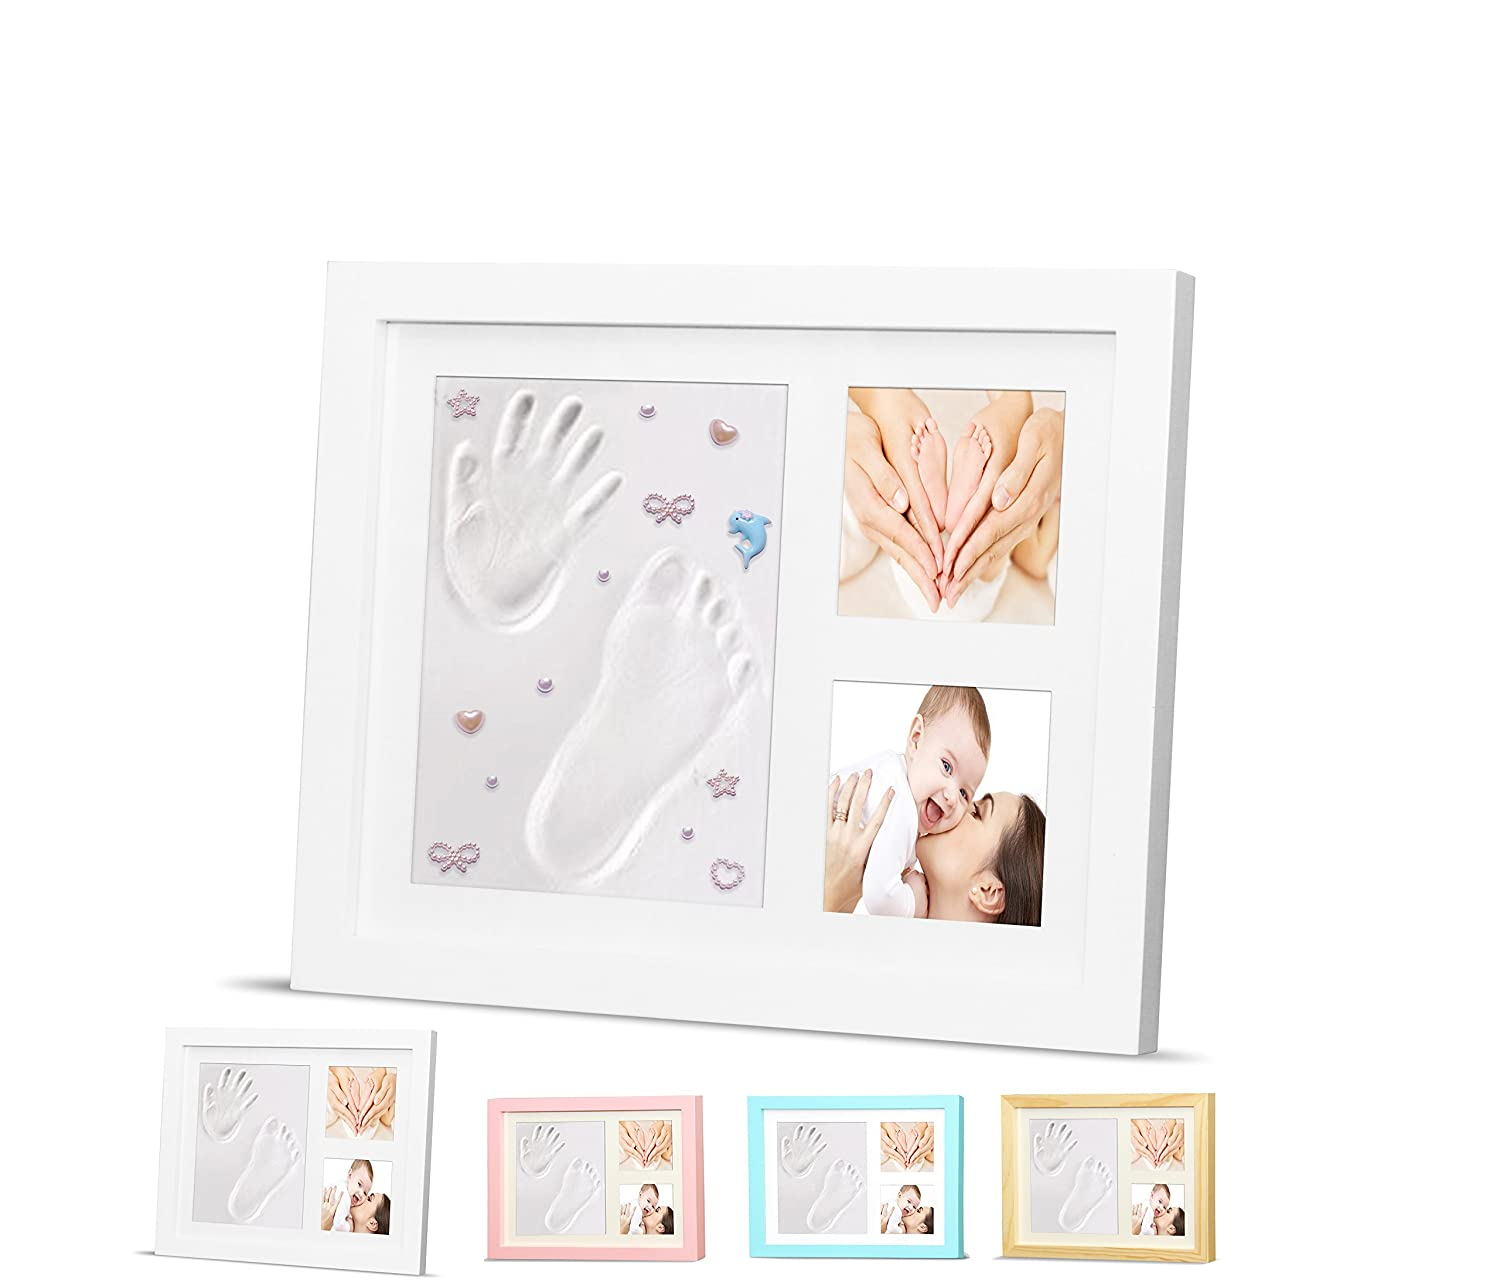 and Grandparents Unique Baby Shower Gifts Adorable Baby Keepsake Gift for New Moms Dads Perfect for Baby Boy and Girl Room Decor by Ninos baby footprint Timeless Newborn Baby Hand and Footprint Kit and Frame